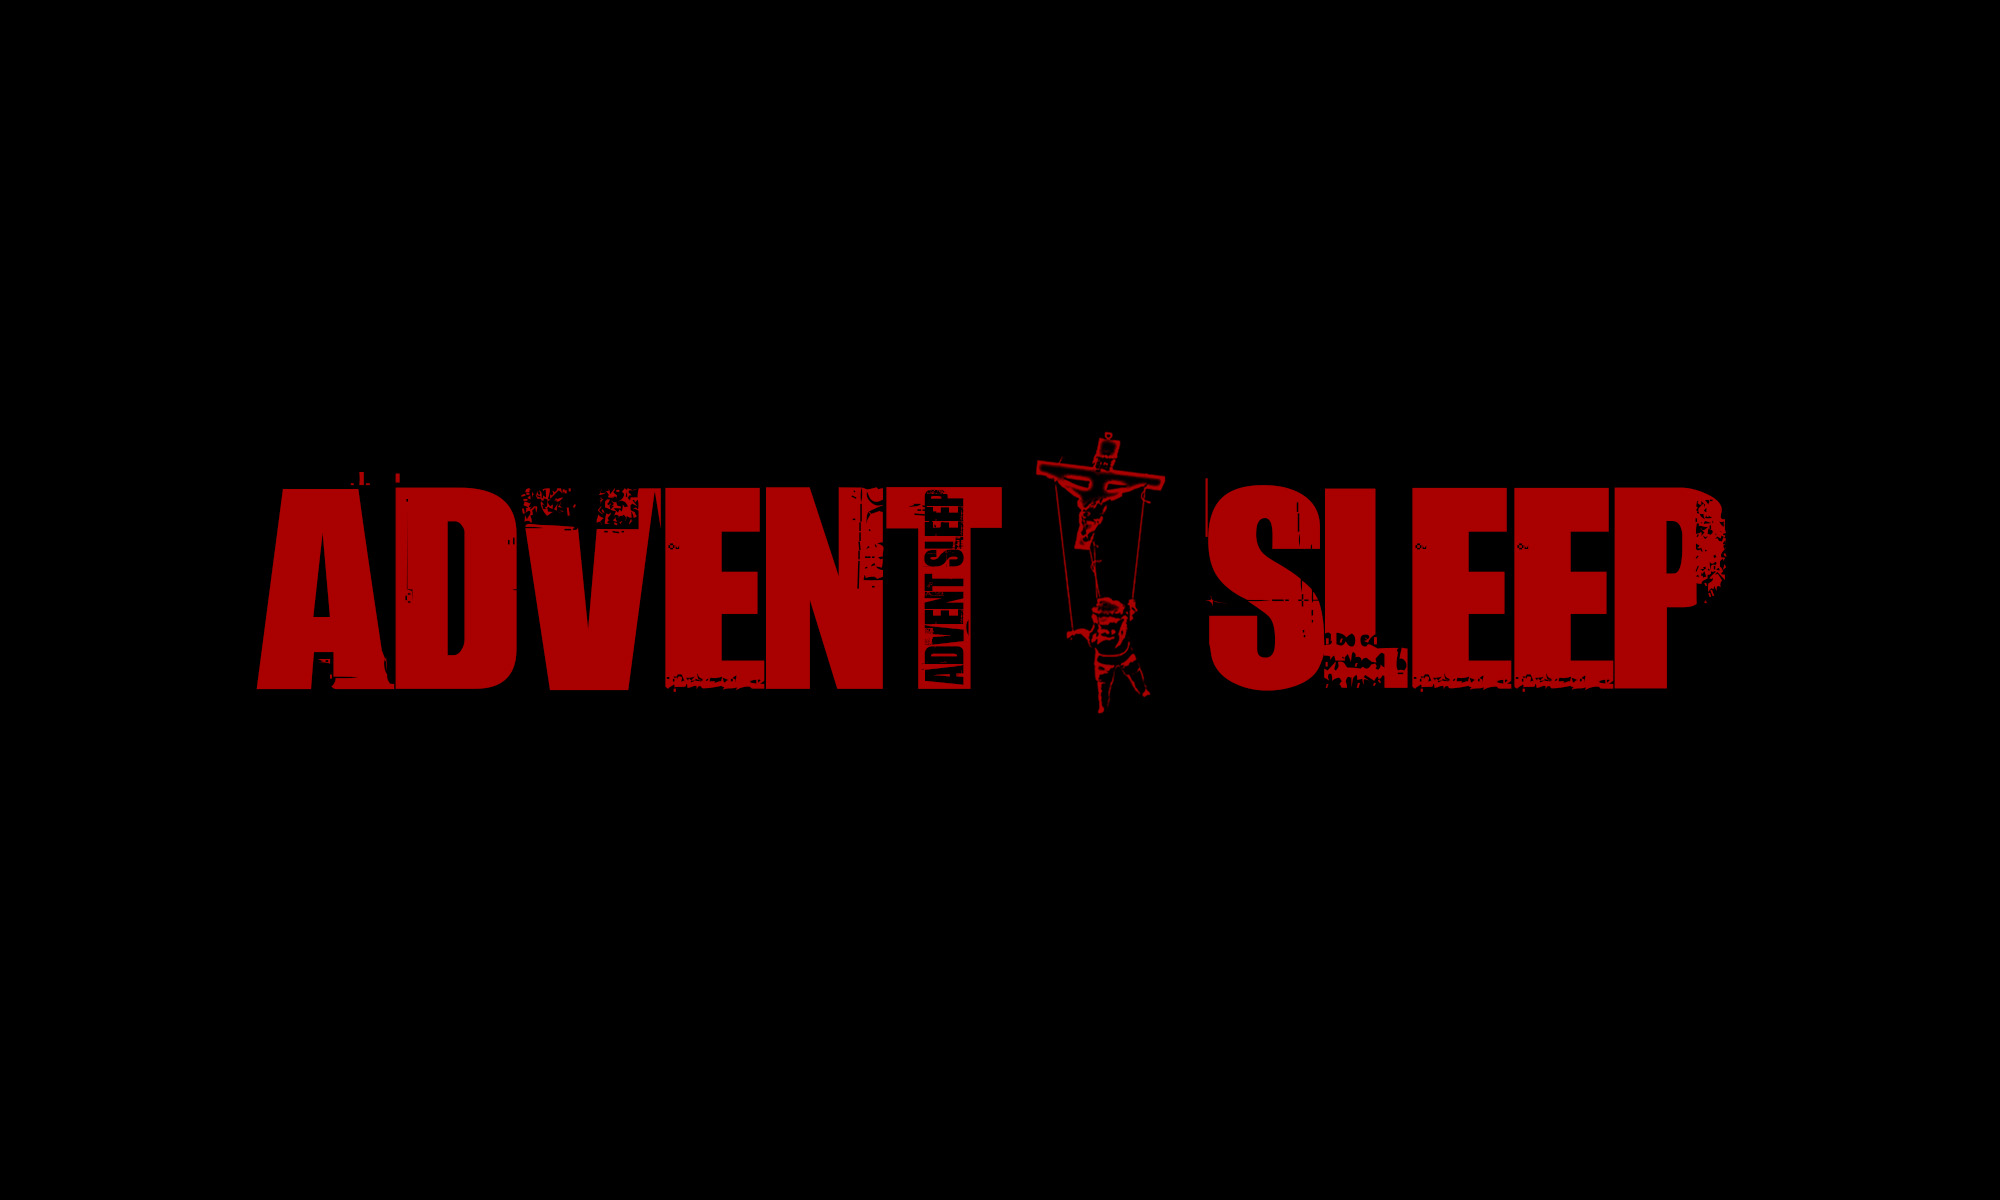 ADVENT SLEEP